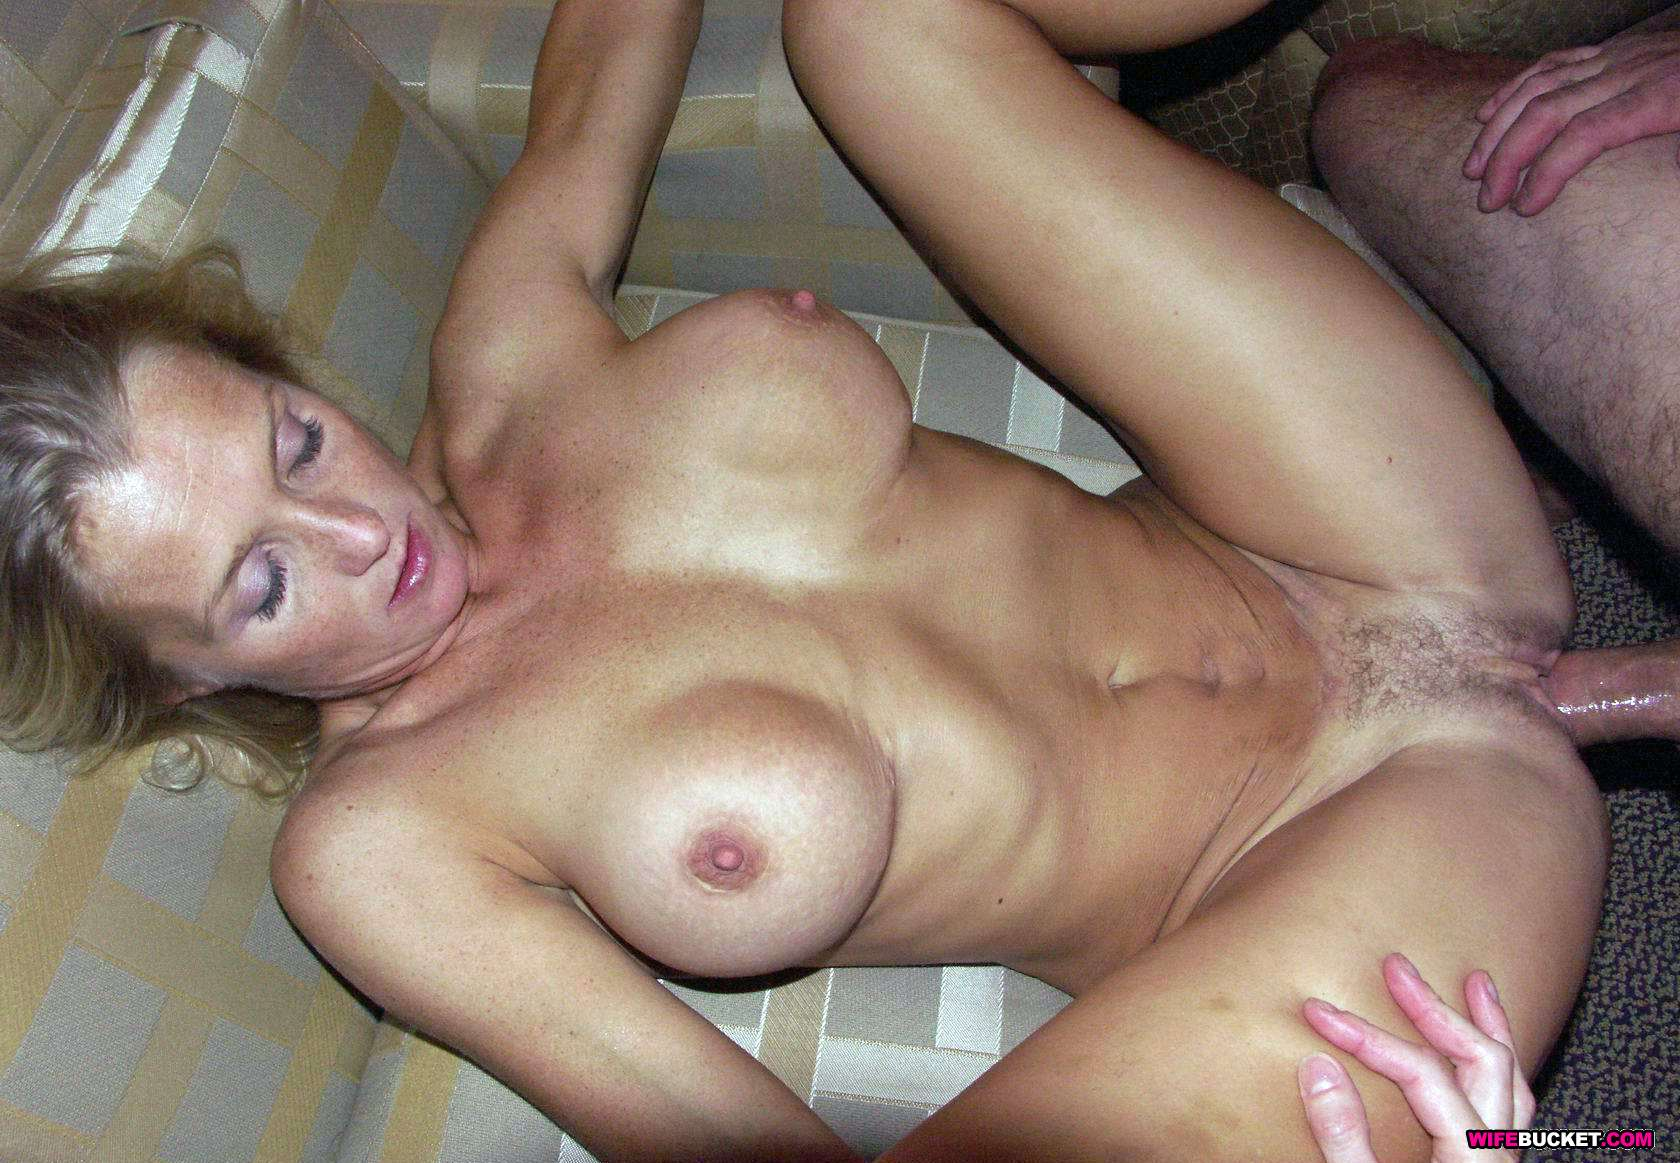 Amateur mature mom son sex apologise, but